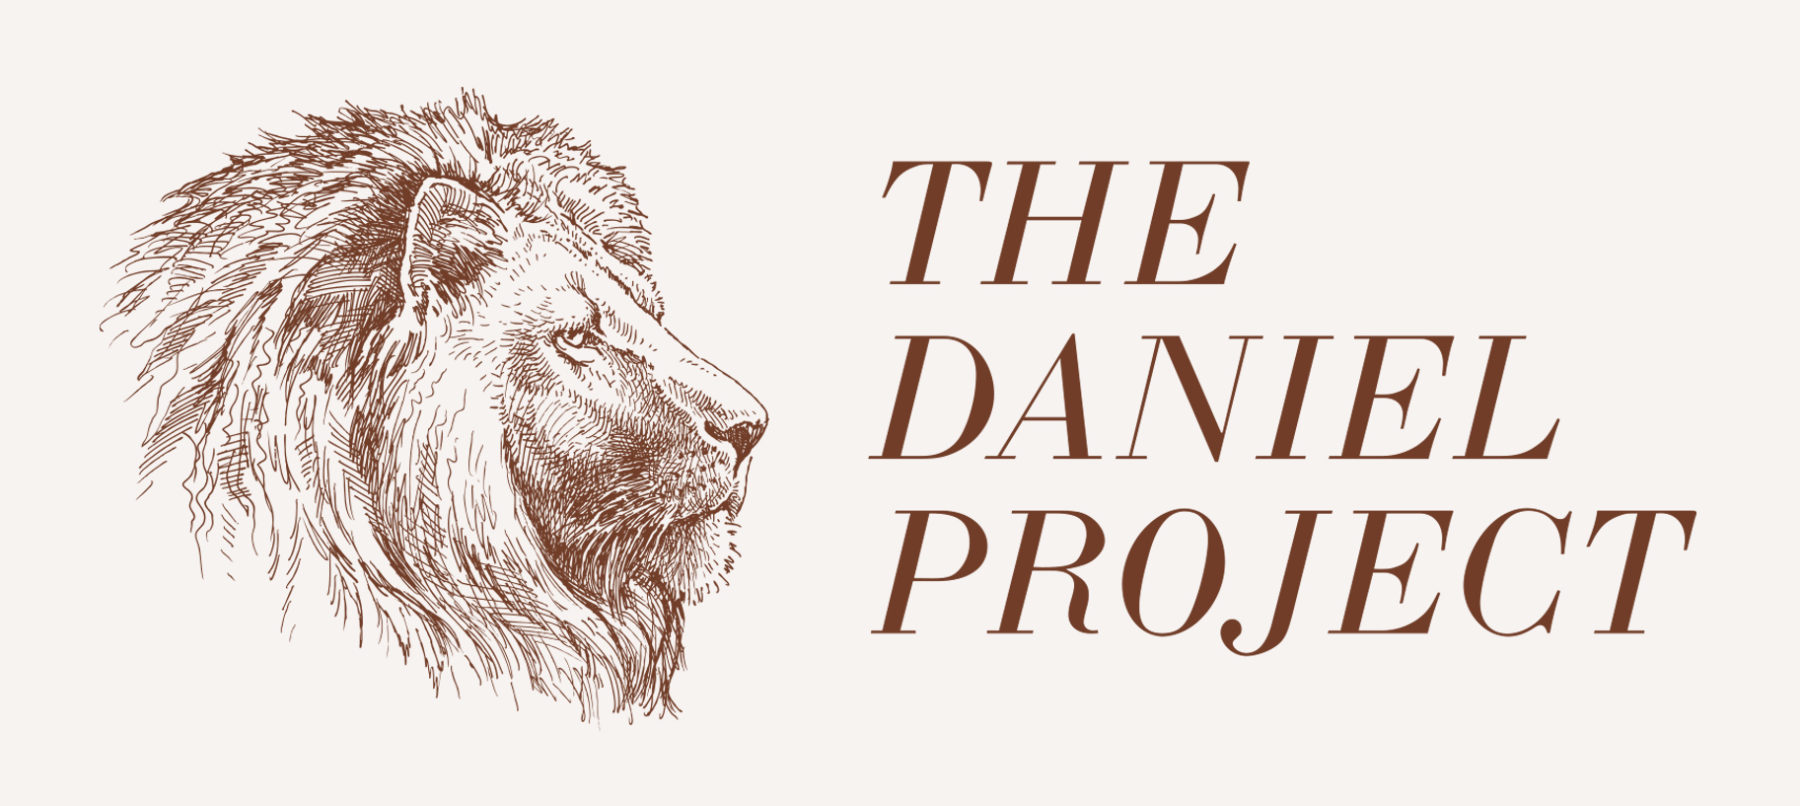 Web Hero danielproject2019